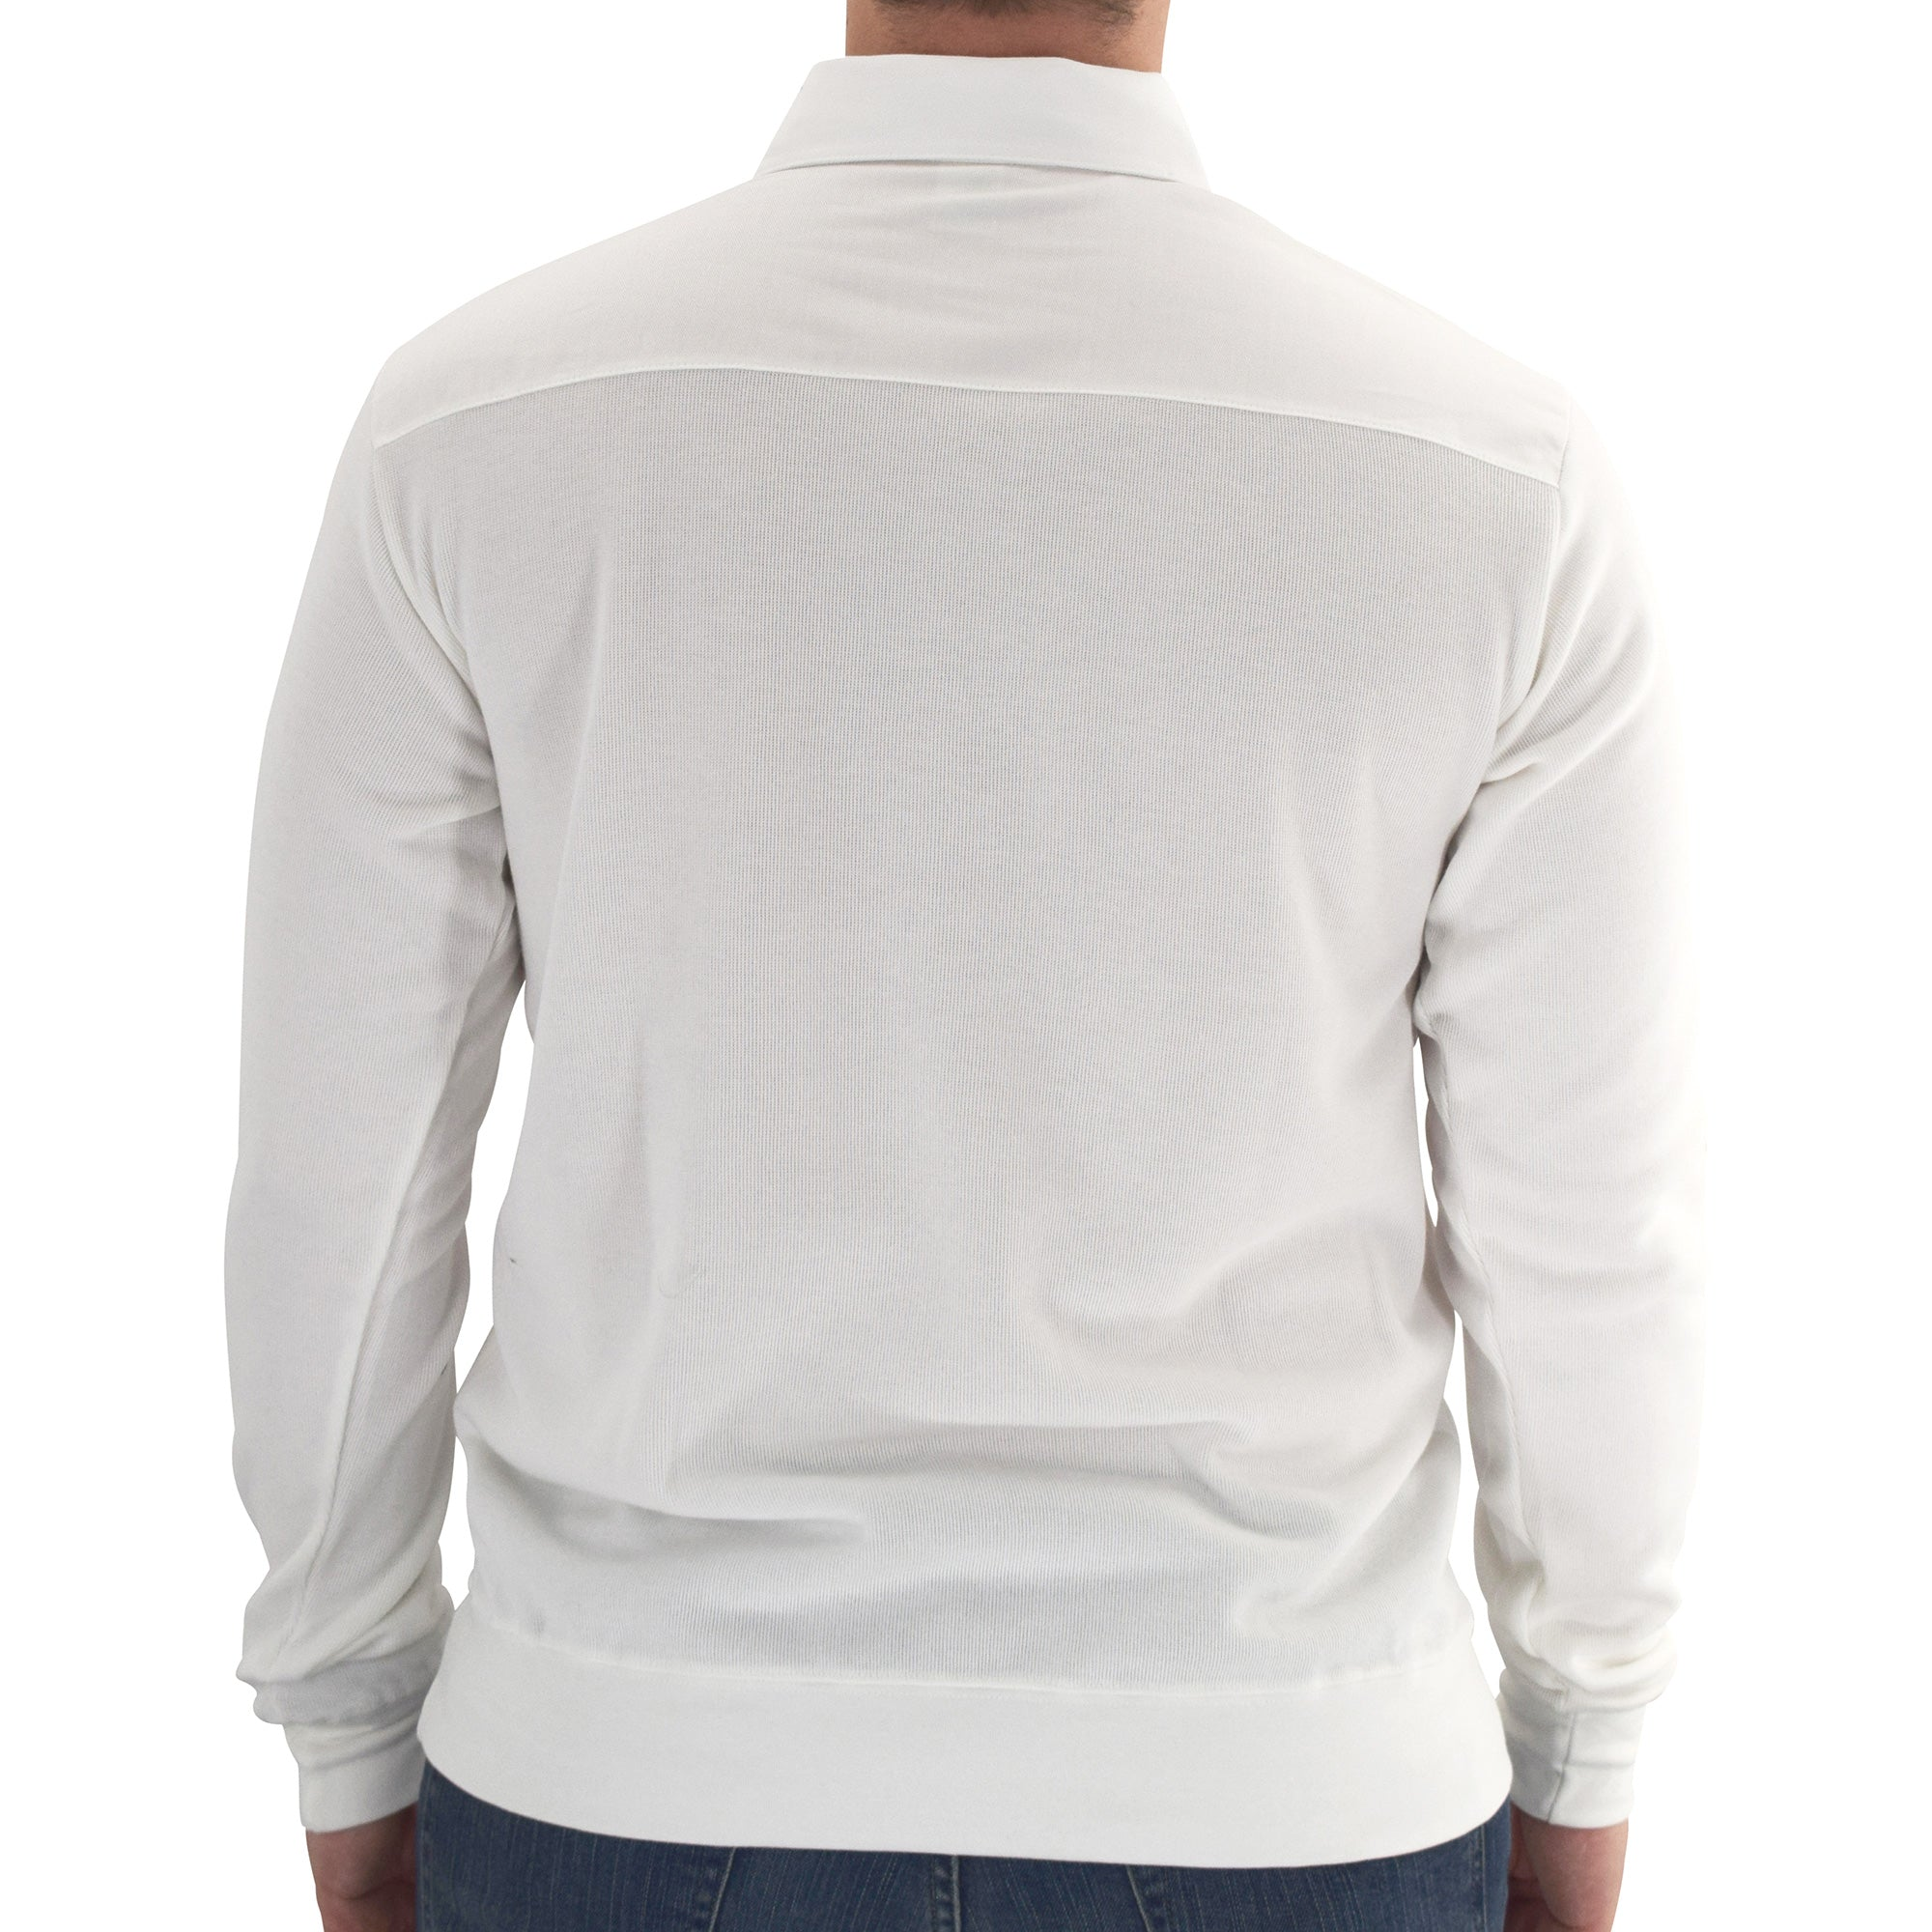 Mens LS Solid Knit Banded Bottom Shirt with Woven Chest Panel 6042-22N - White - theflagshirt